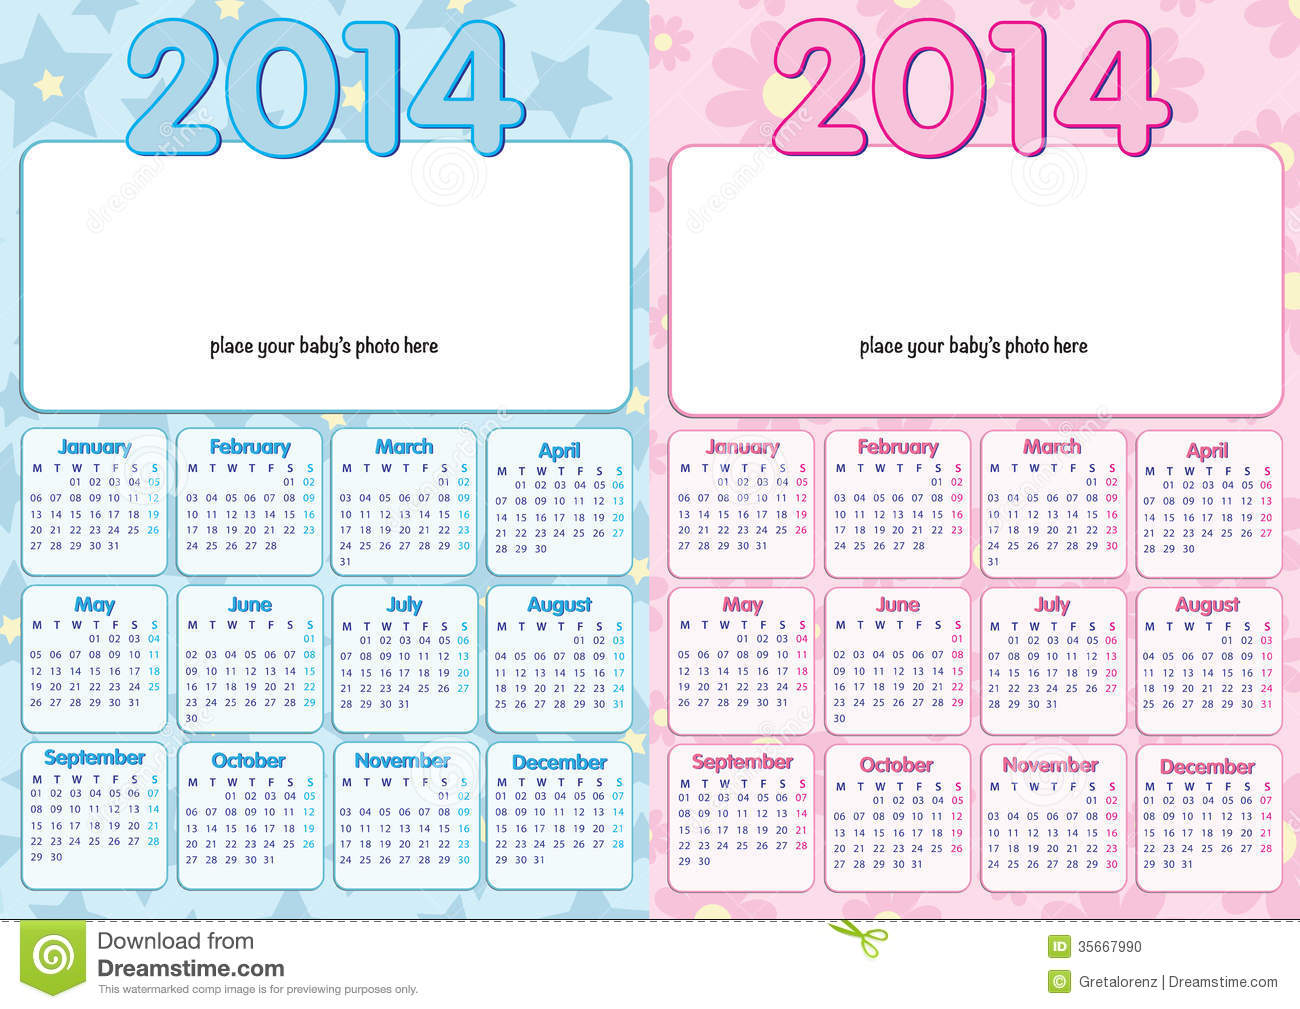 Chinese Gender Calendar 2014 Baby calendar 2014 in english, for boy ...